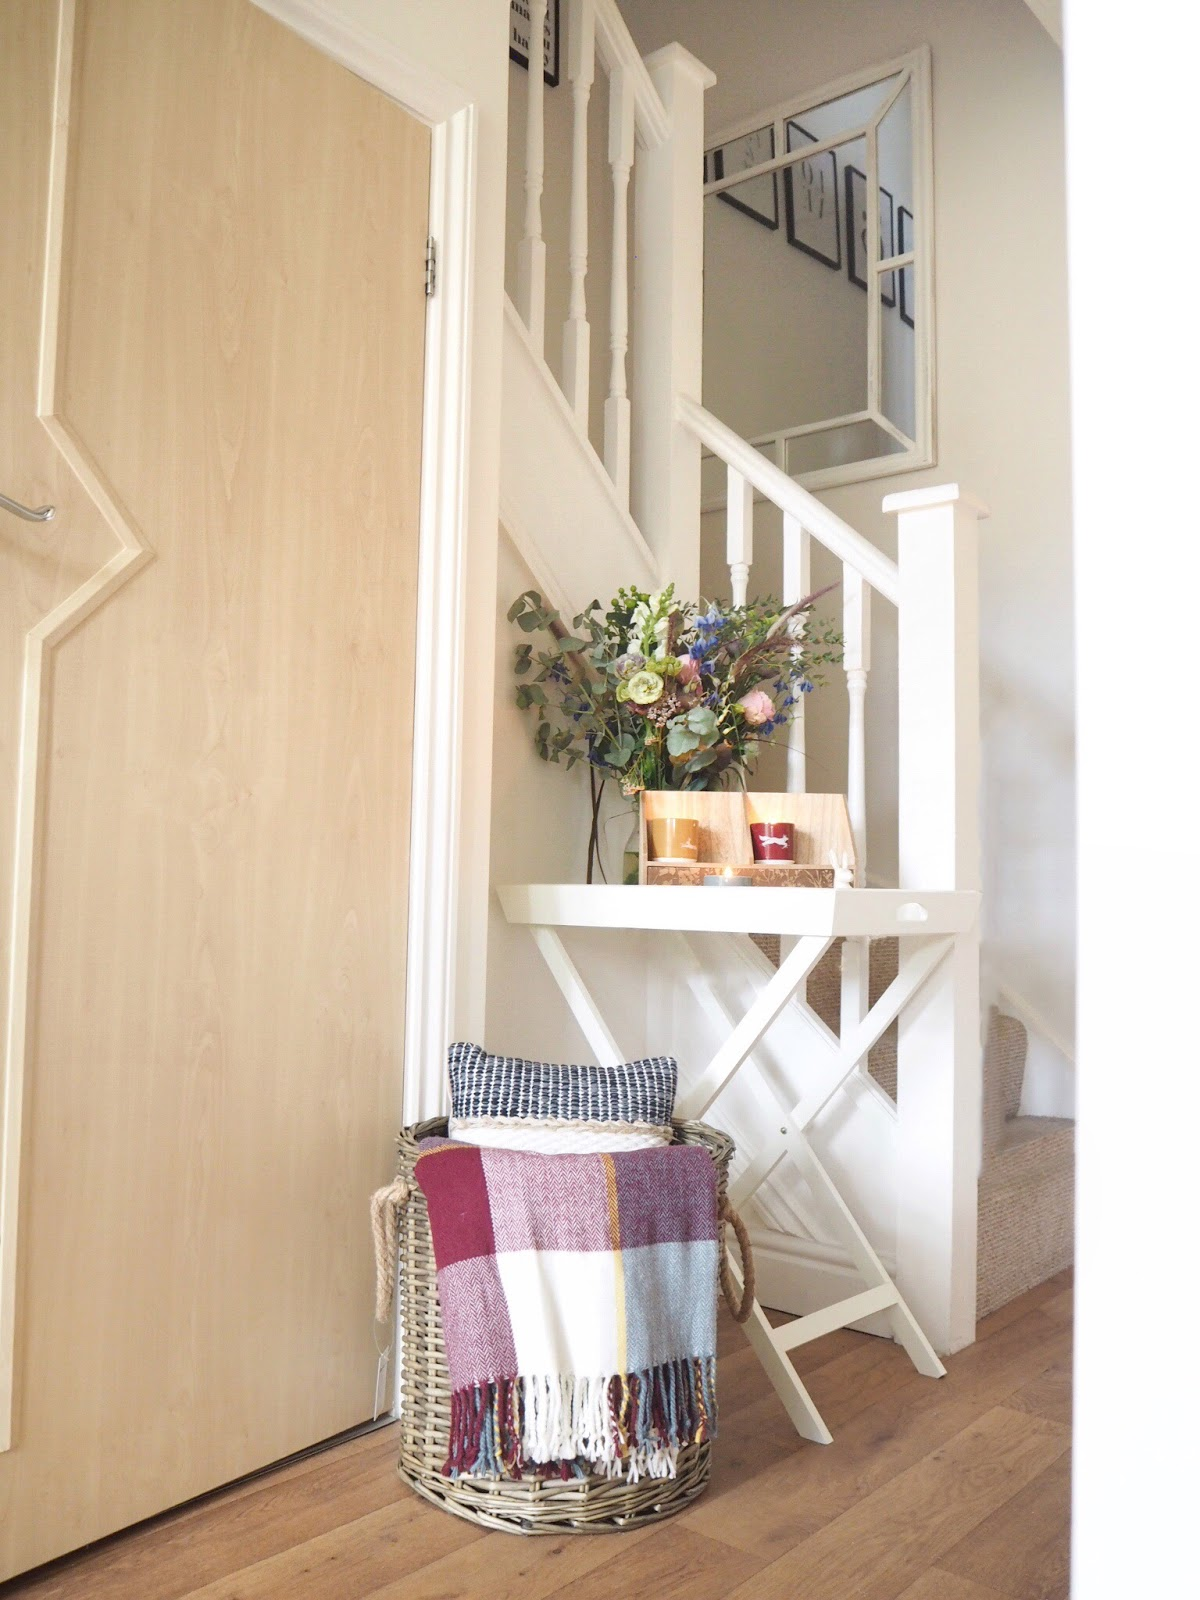 How to create extra space in a small house including reverting a cupboard into toy storage, using all the space you've got and regular decluttering. How to create a feeling of space with clever furniture and tricks of the eye, and ways to hide kids toys and clutter in your small home.